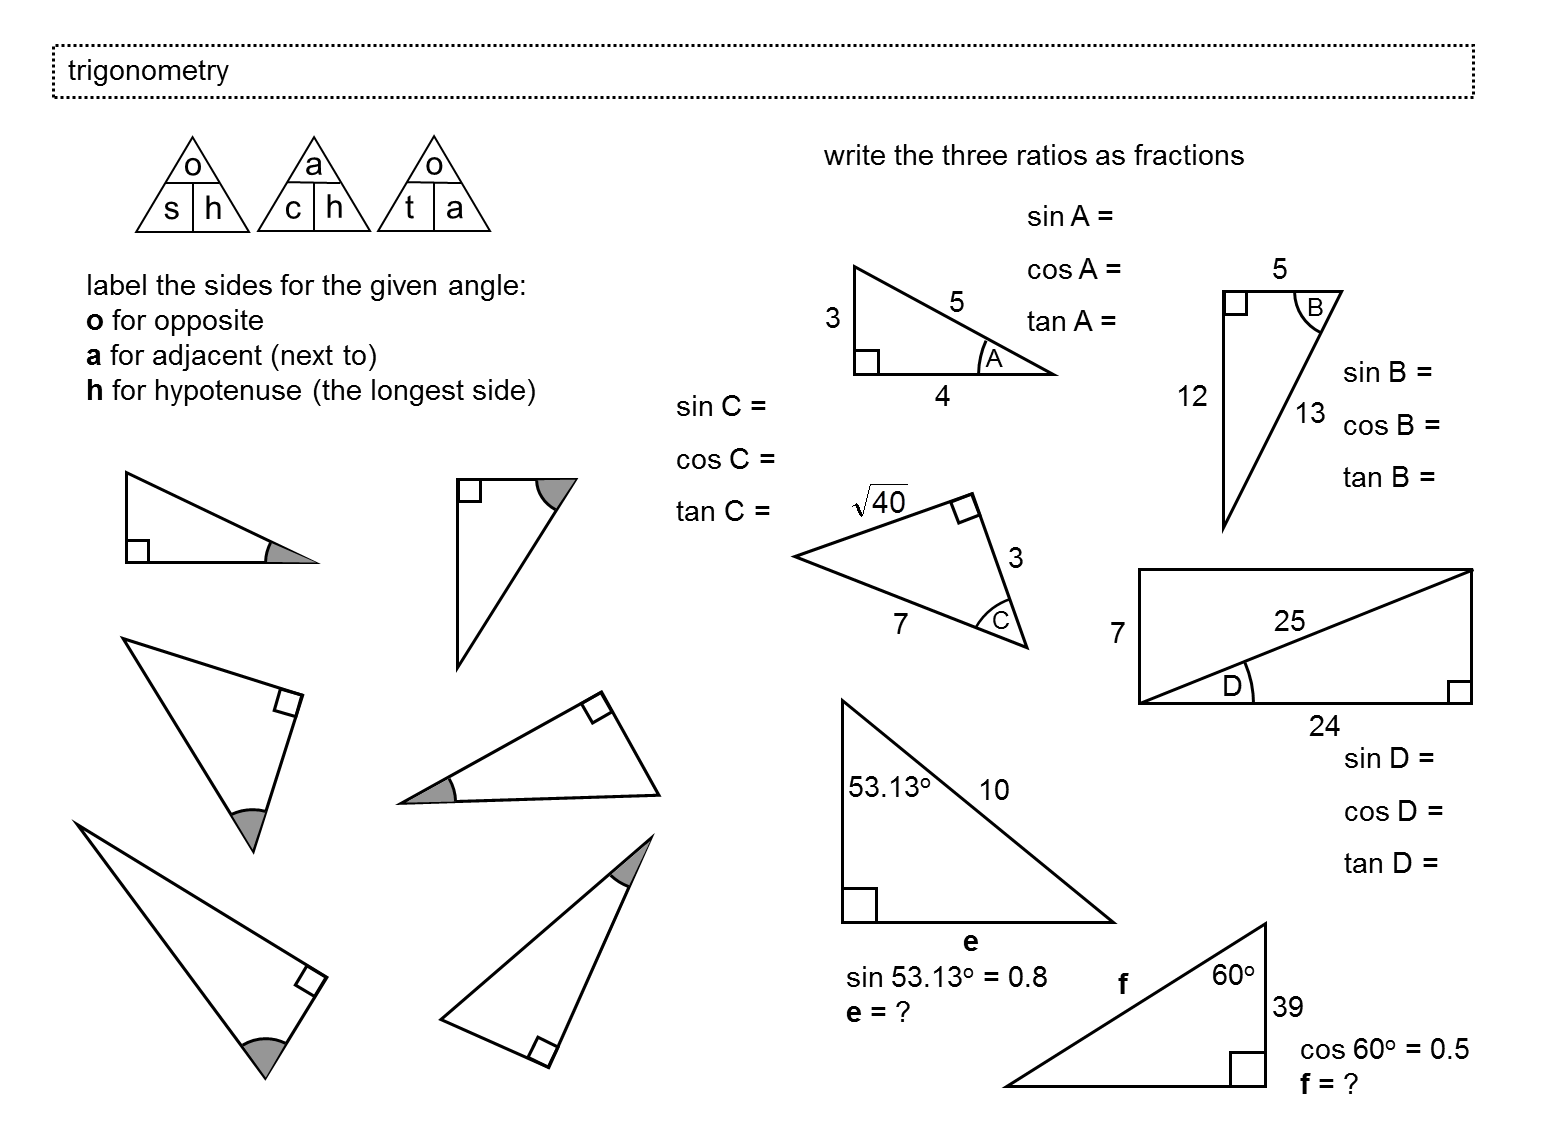 Trigonometry in Right-Angled Triangles - Miss Norledge's Storeroom